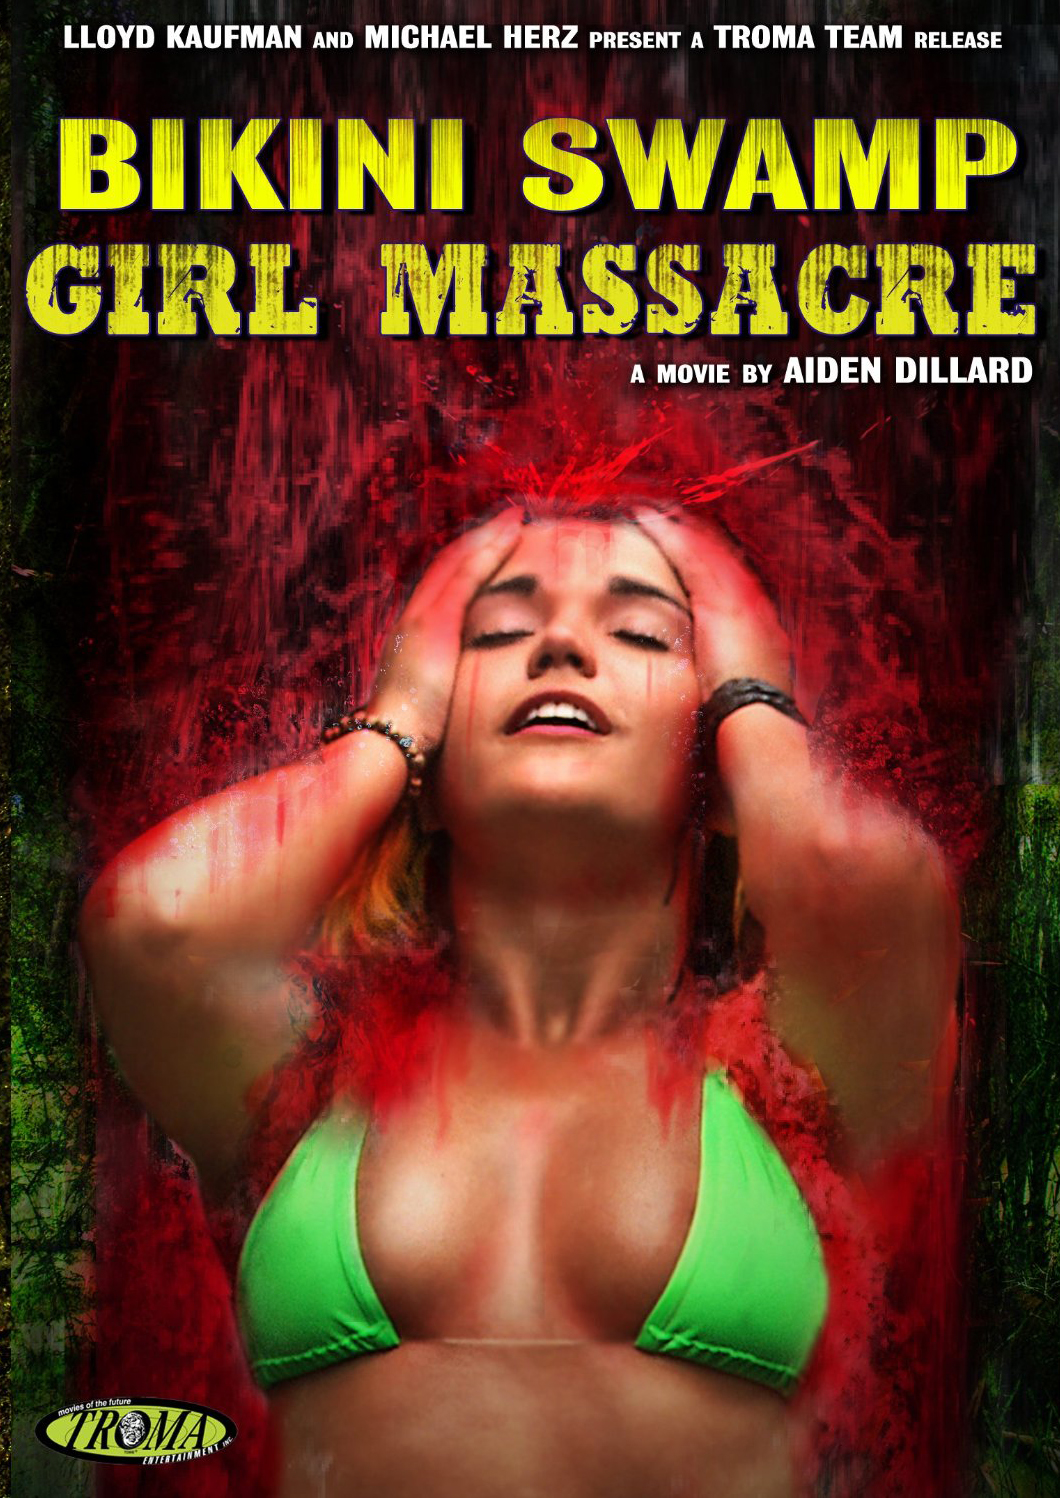 Bikini_Swamp_Girl_Massacre_Troma.jpg